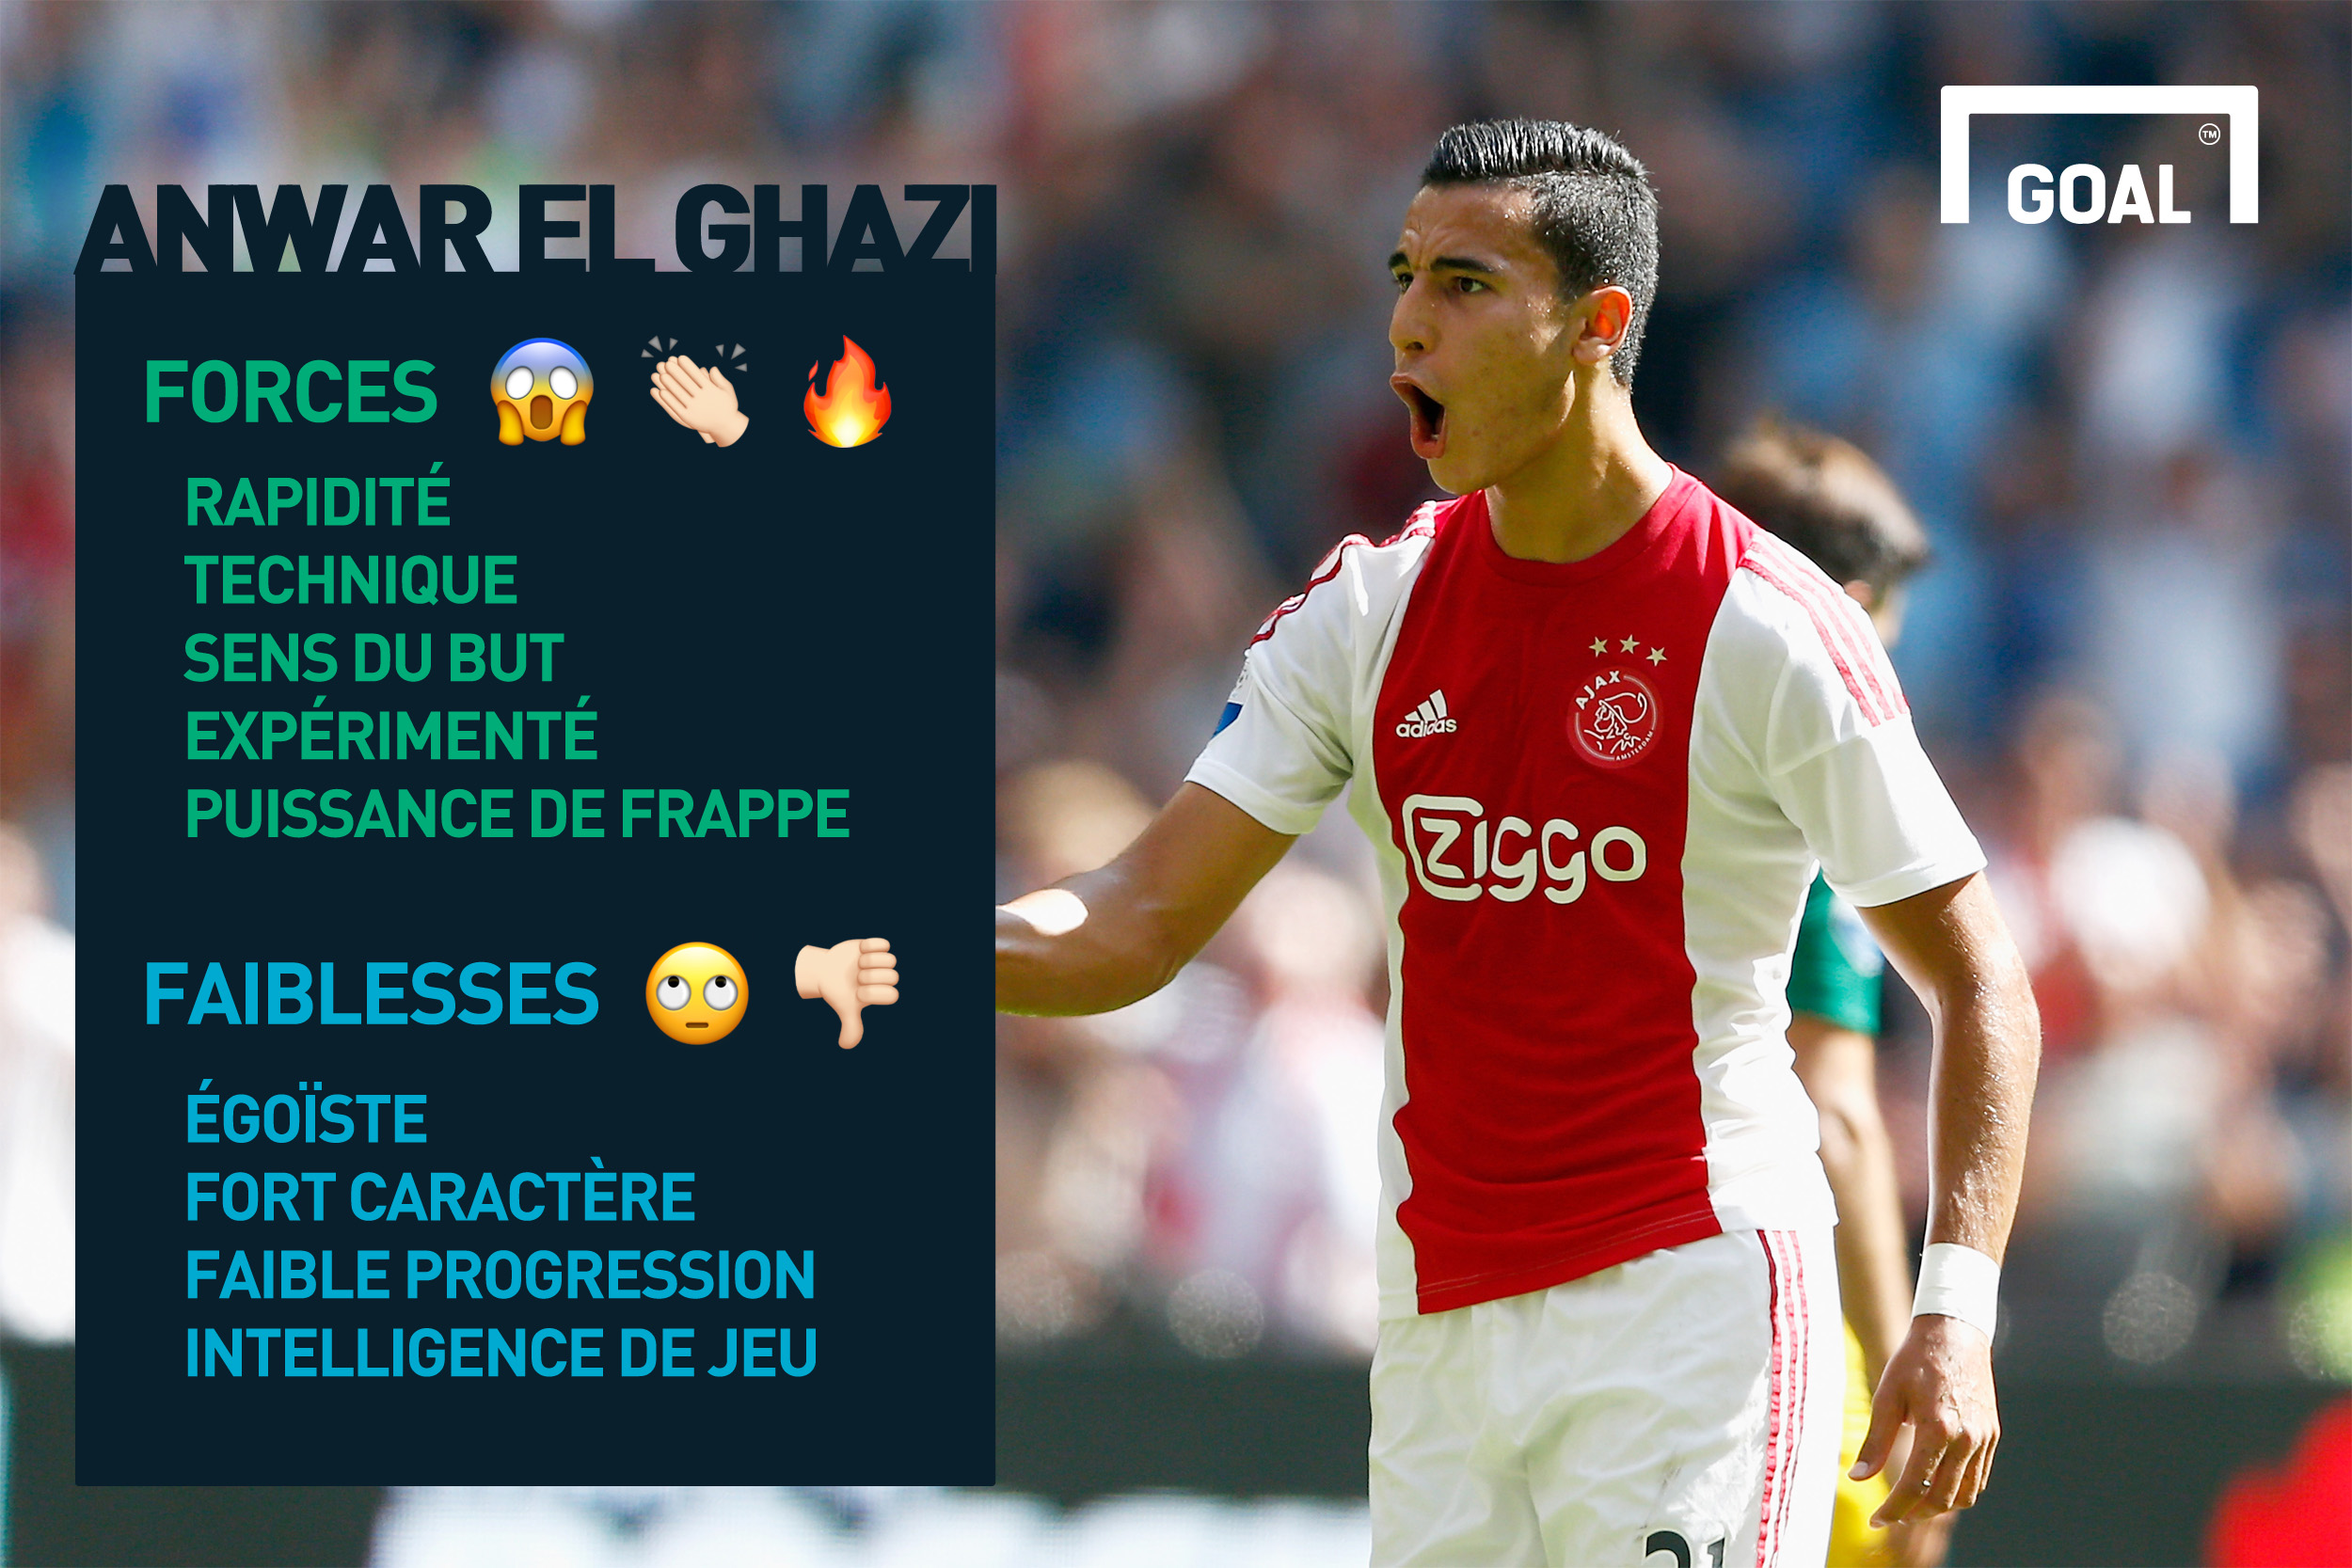 Lille accueille El Ghazi — Officiel